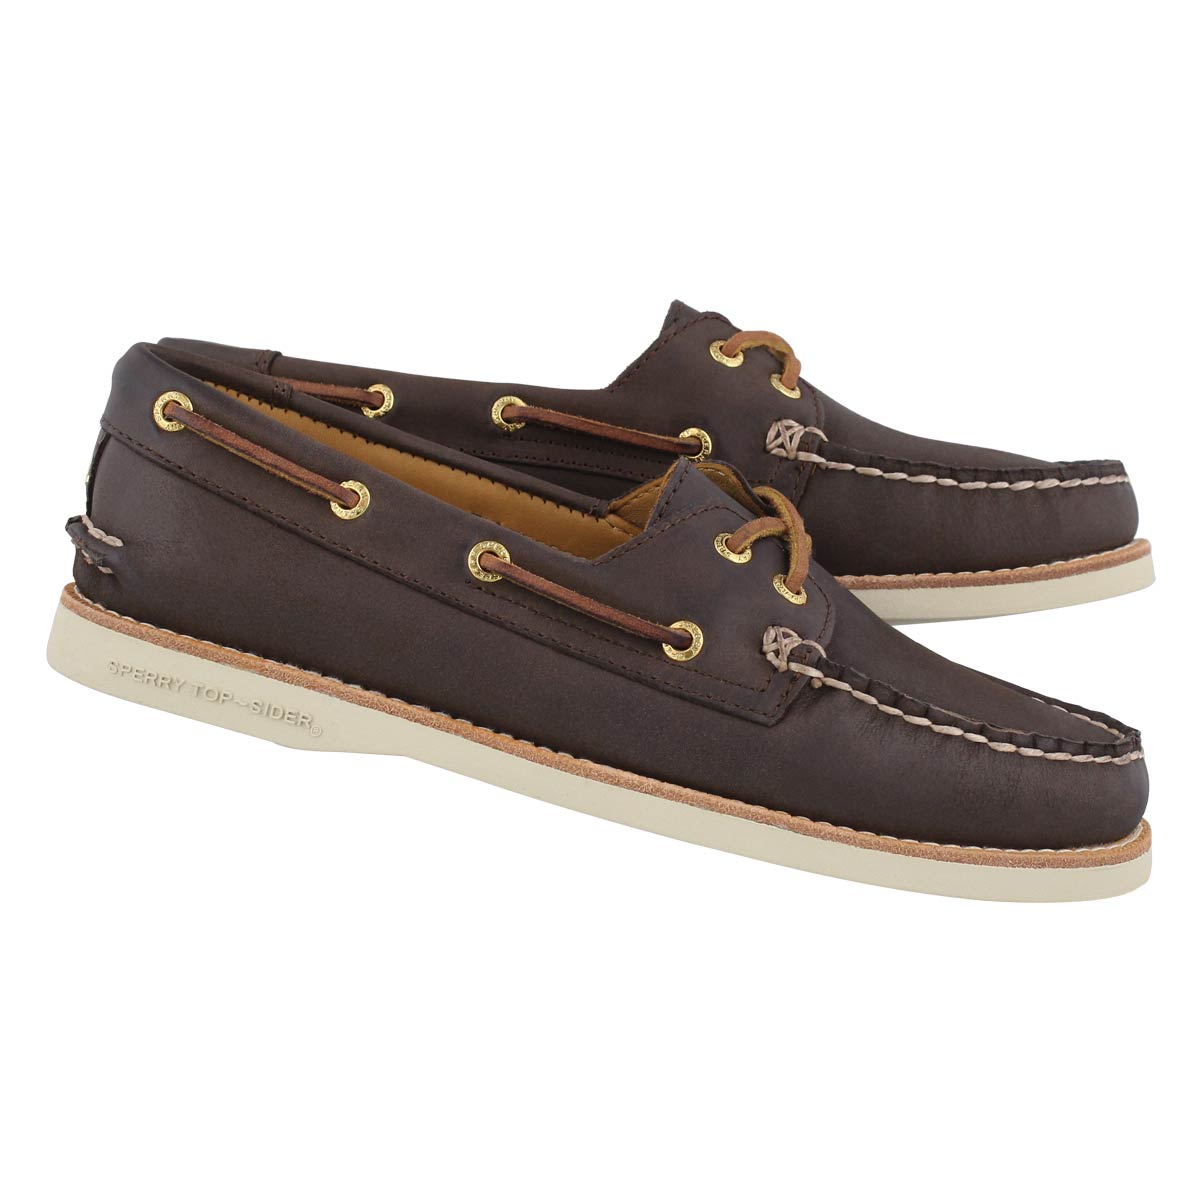 Lds Gold Cup A/O brown boat shoe